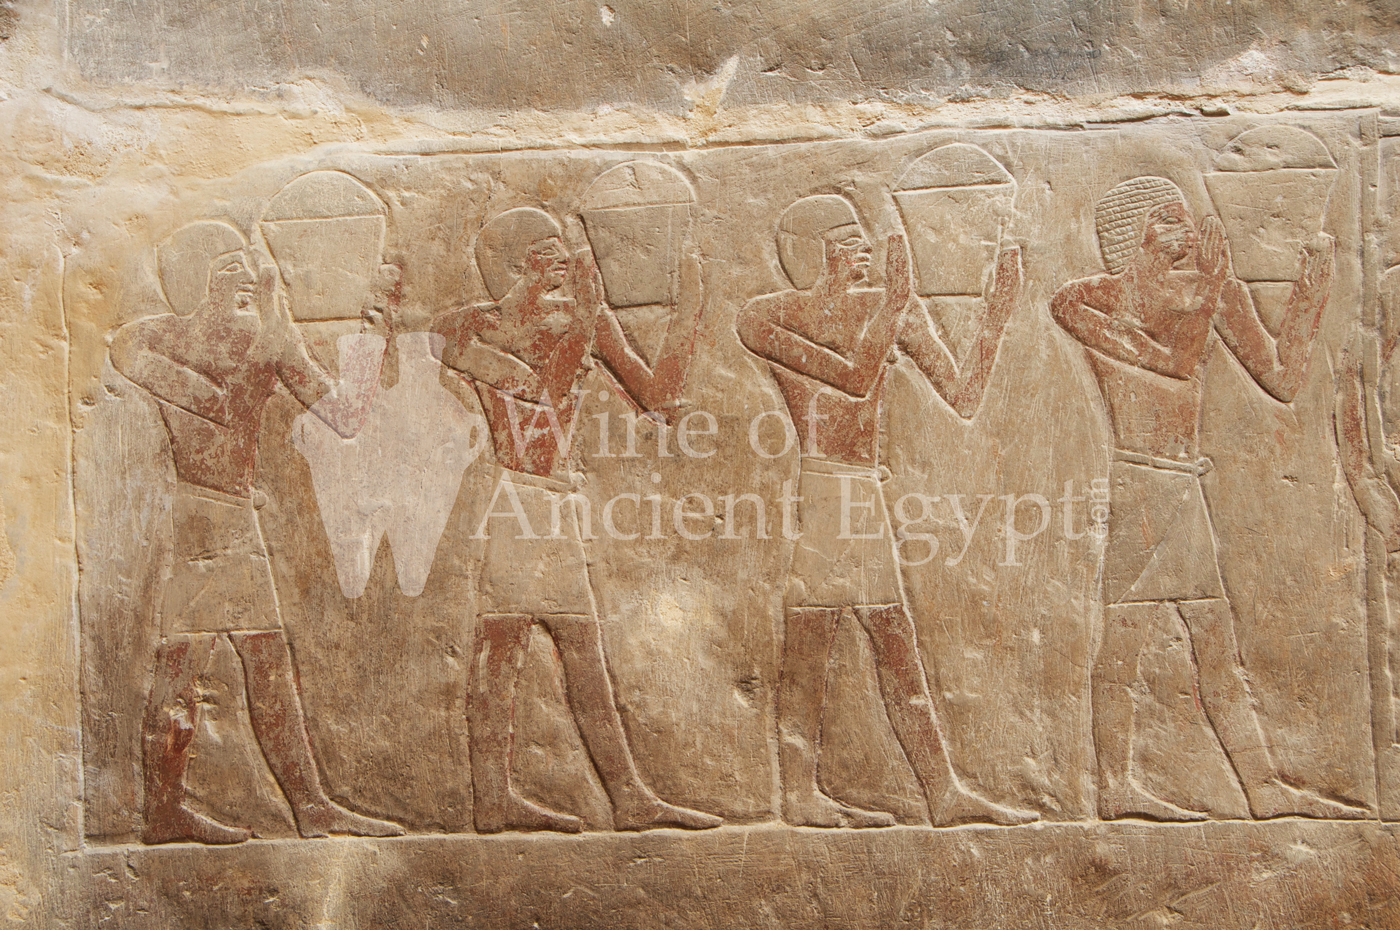 Men transporting baskets of grapes to the wine press. Mereruka. Saqqara. Dynasty 6